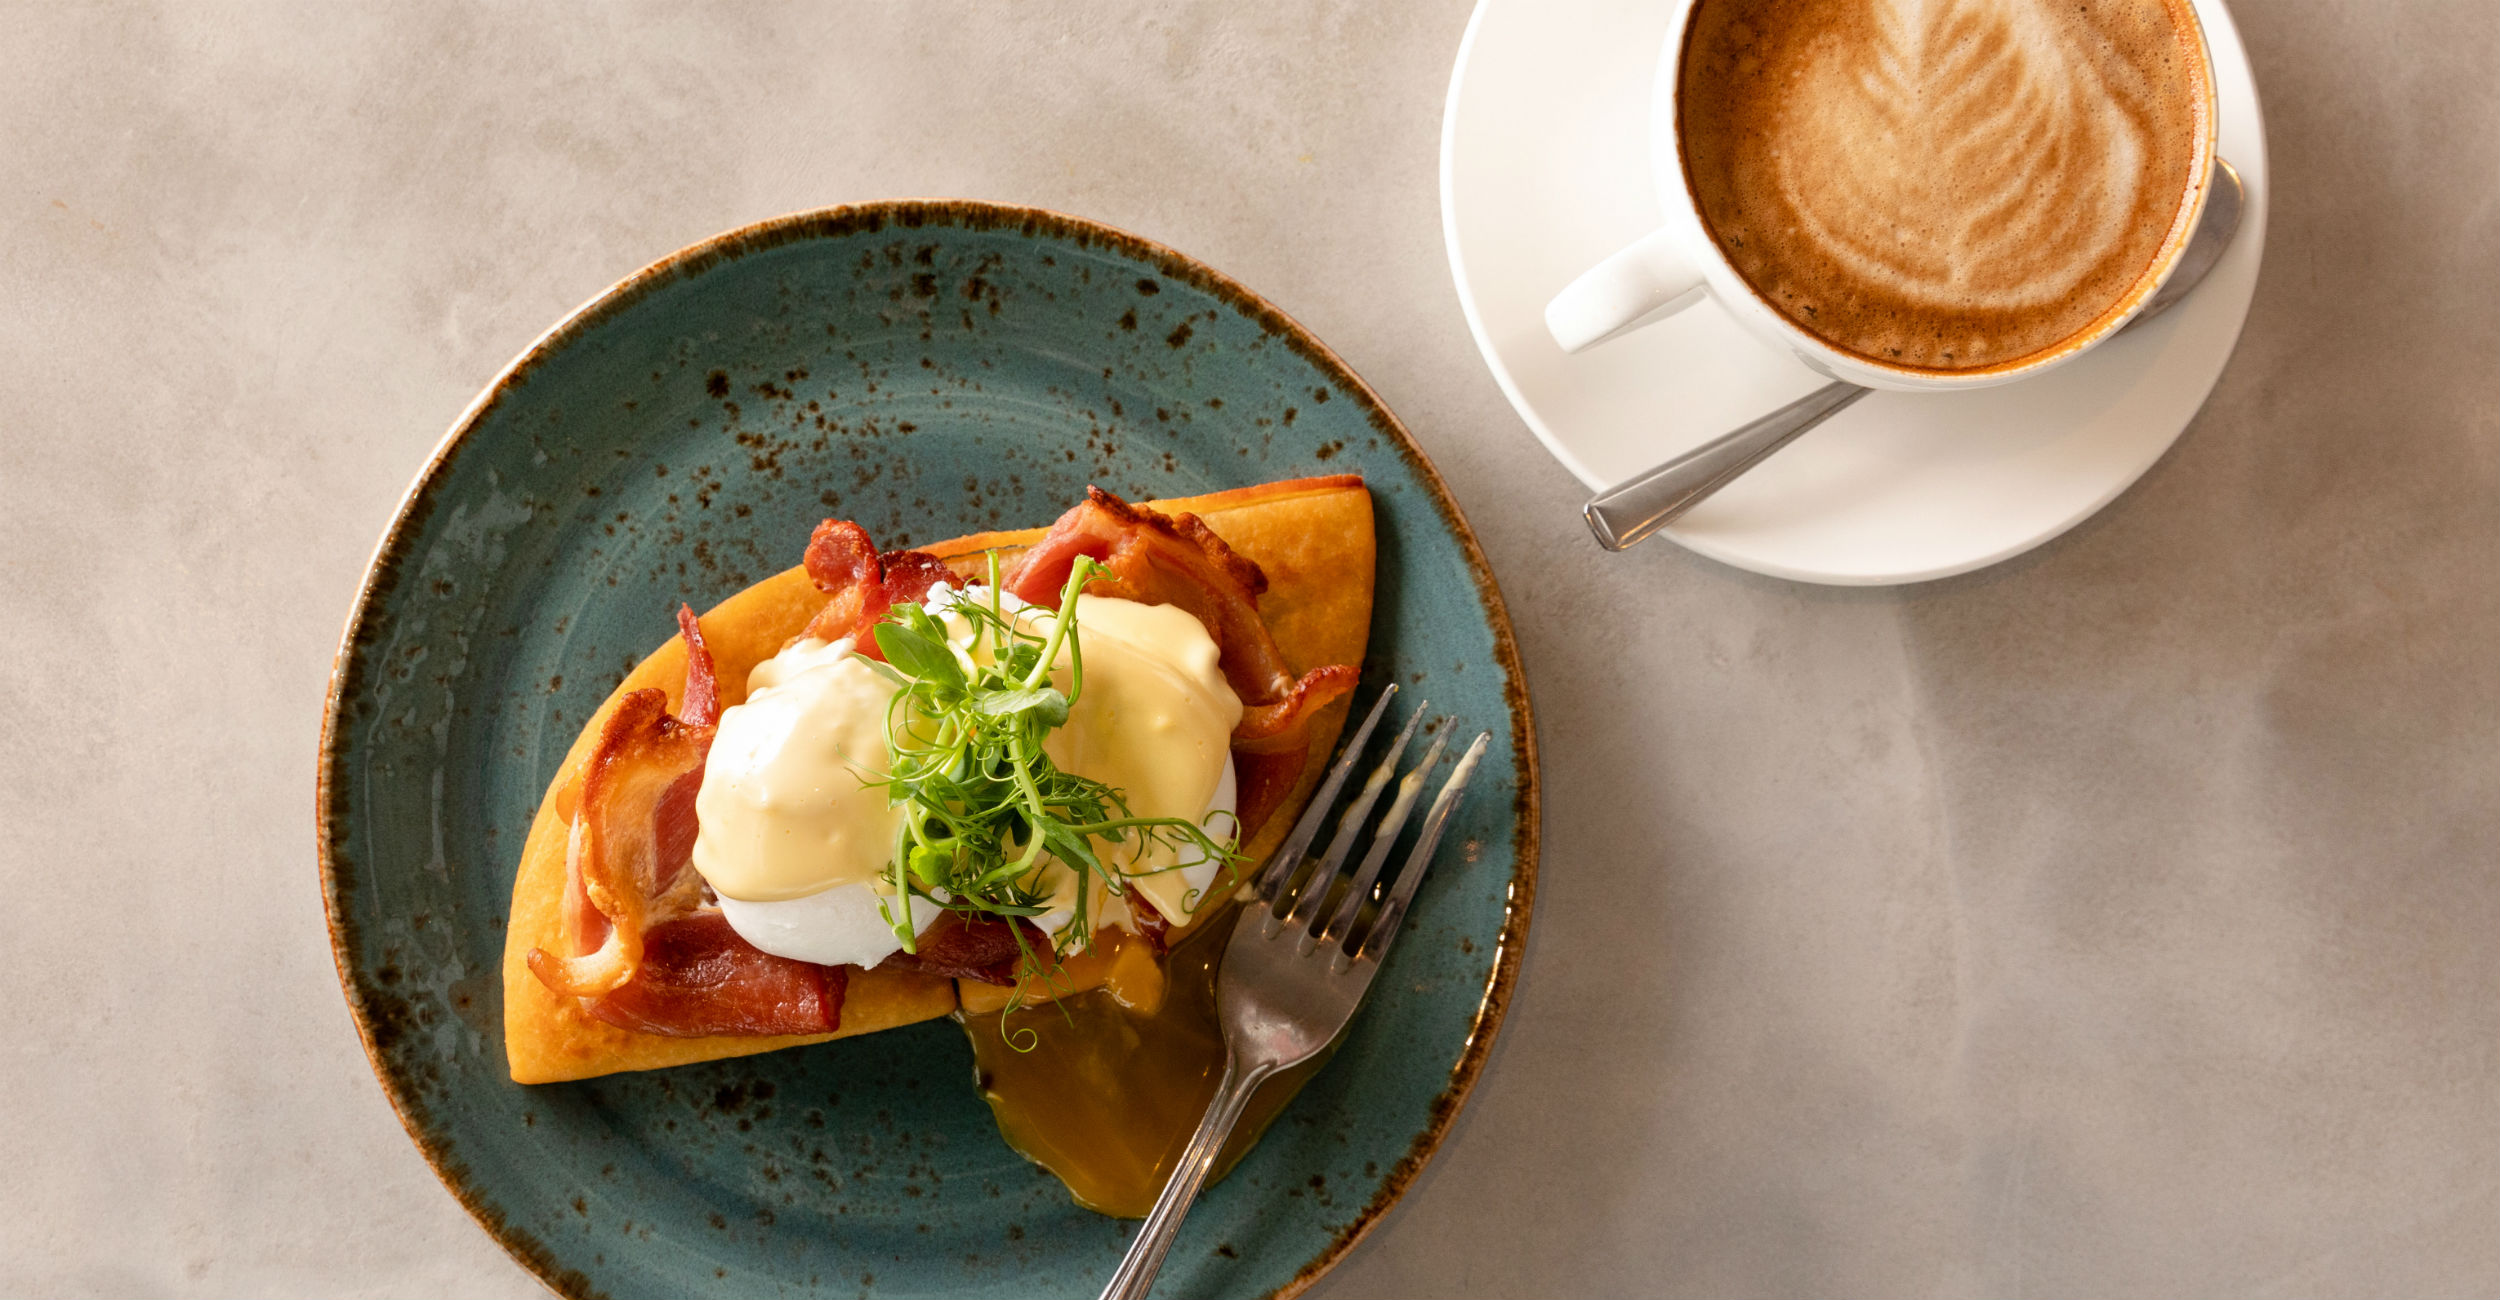 Blog - Best Places for Brunch in Edinburgh